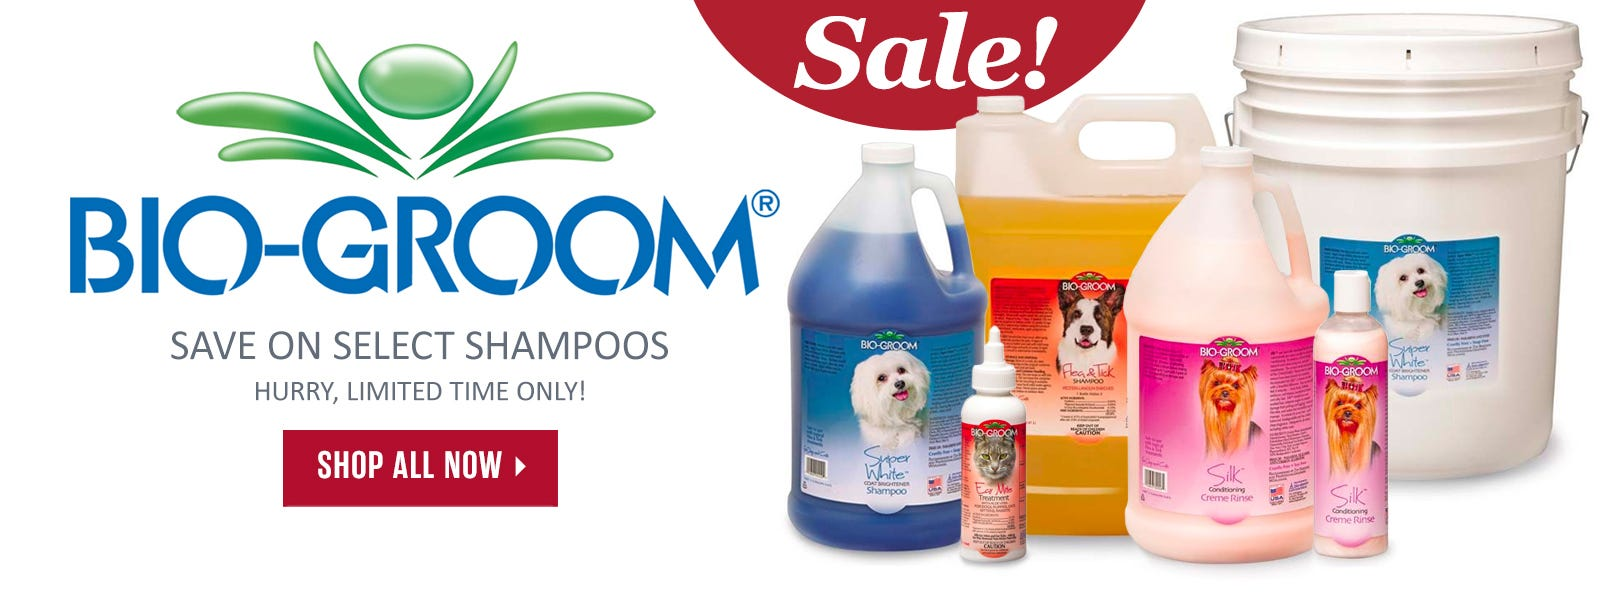 Select Bio-Groom shampoos on sale for a limited time!